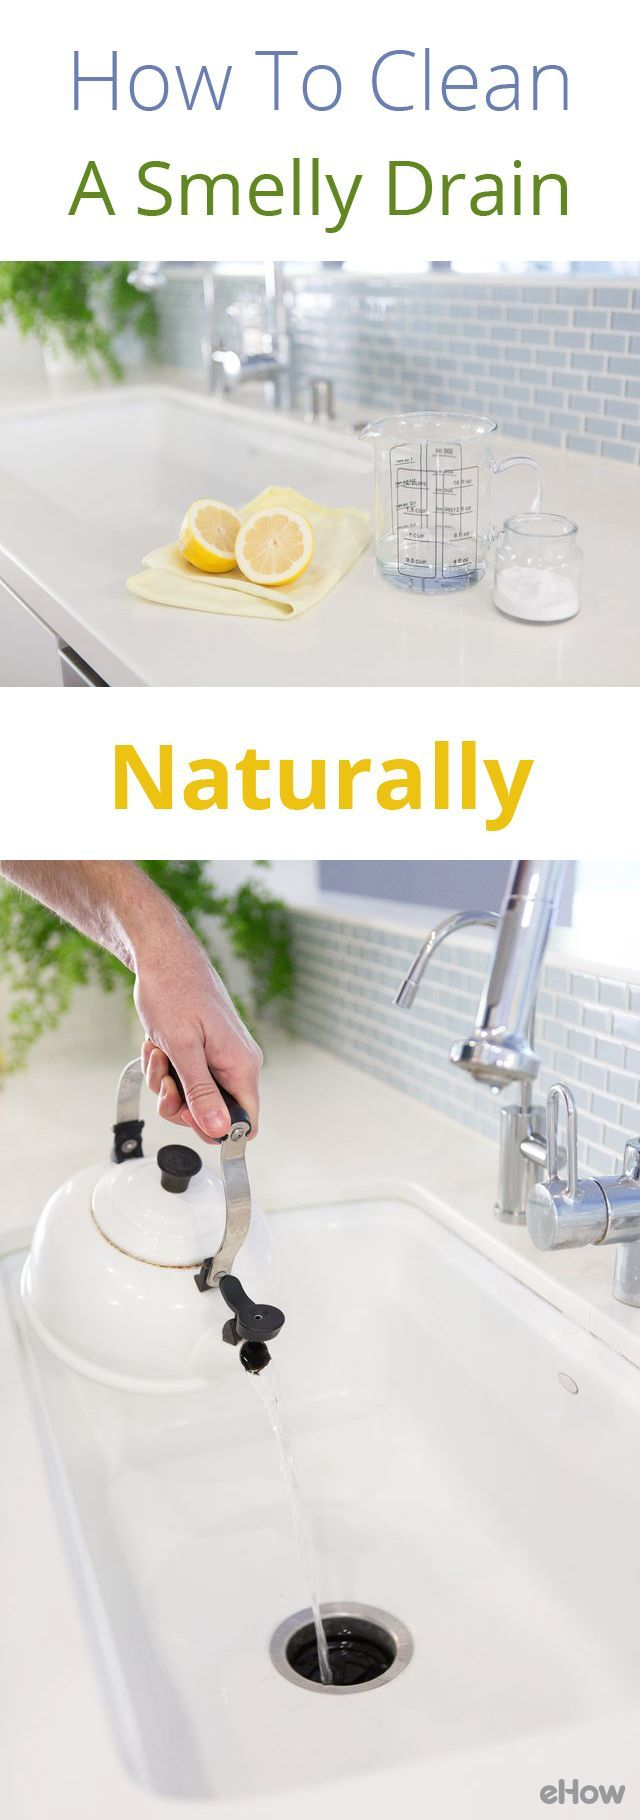 25 best ideas about smelly drain on pinterest clean - How to clean bathroom sink drain ...